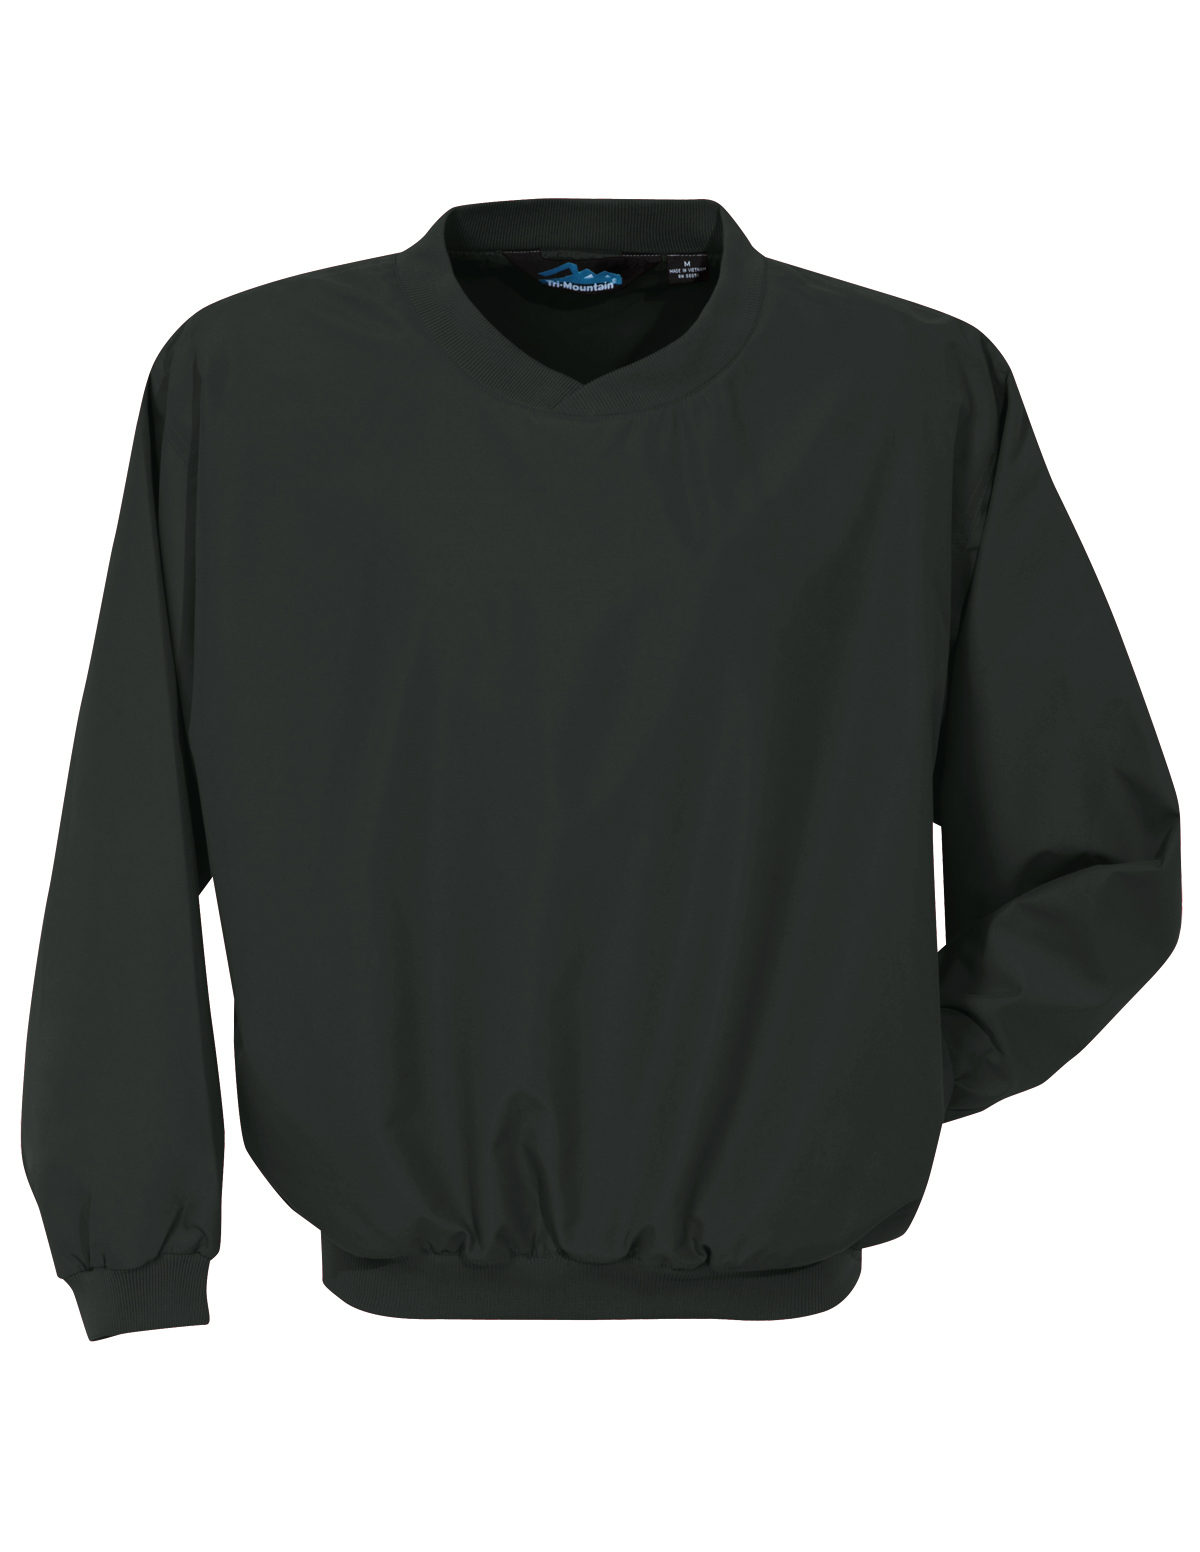 Tri-Mountain Windstar 2500 Microfiber Windshirt, 2X-Large, Black